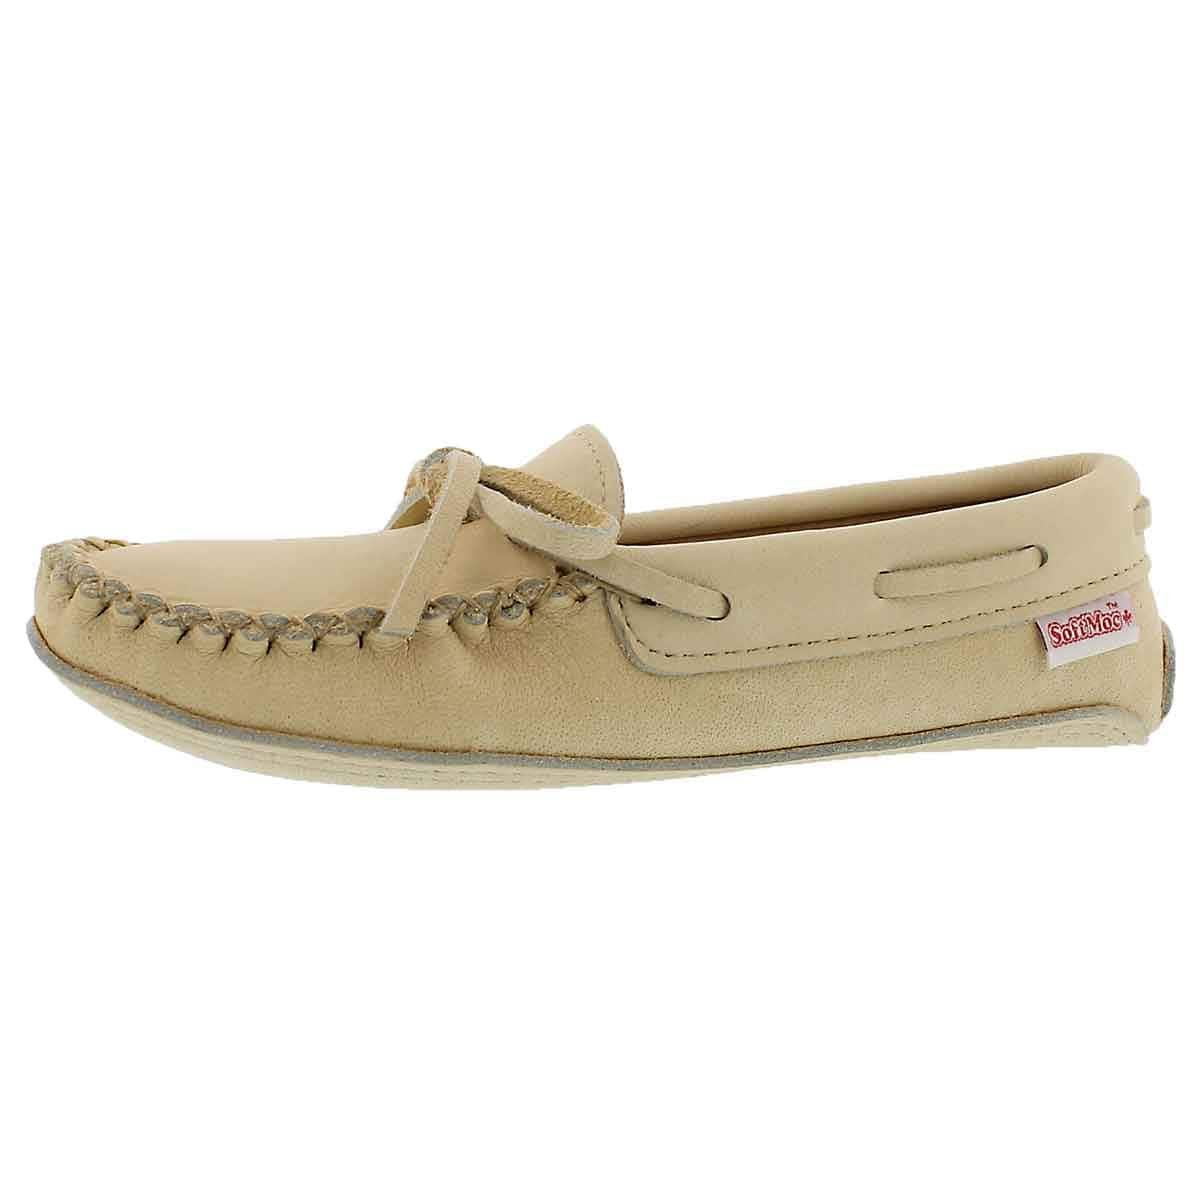 SoftMoc Women's Double Sole Caribou Moccasin Natural 6 M US